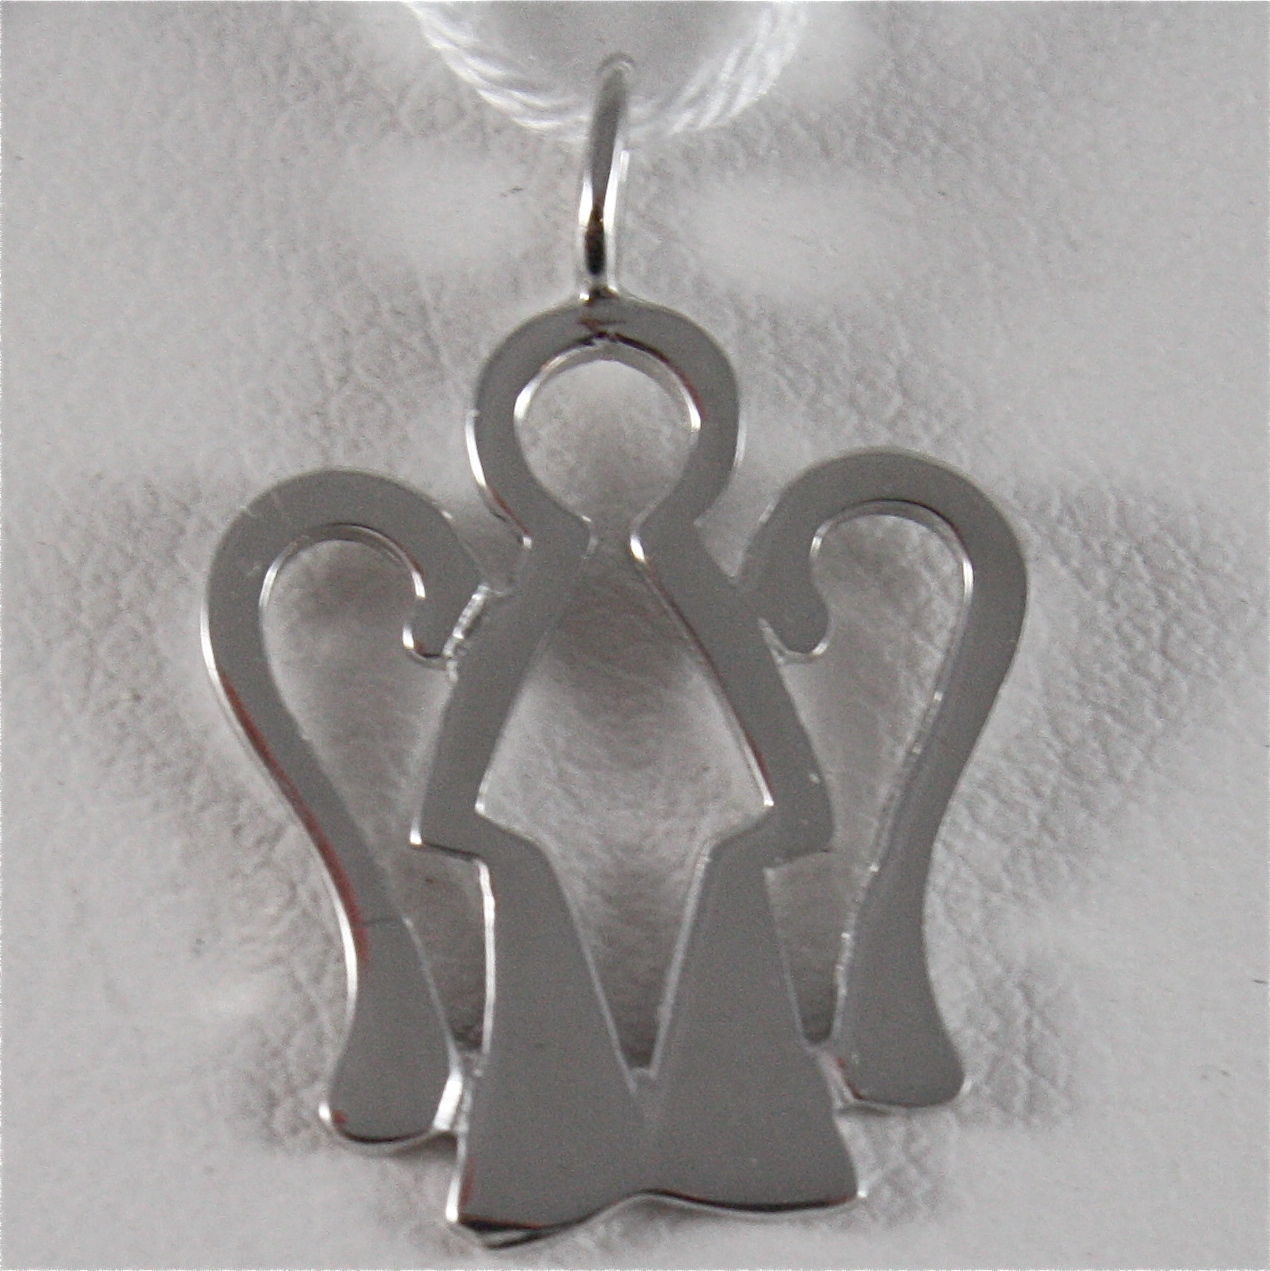 ROBERTO GIANNOTTI NKT175B SOLID WHITE GOLD 9KT ANGEL PENDANT MADE IN ITALY